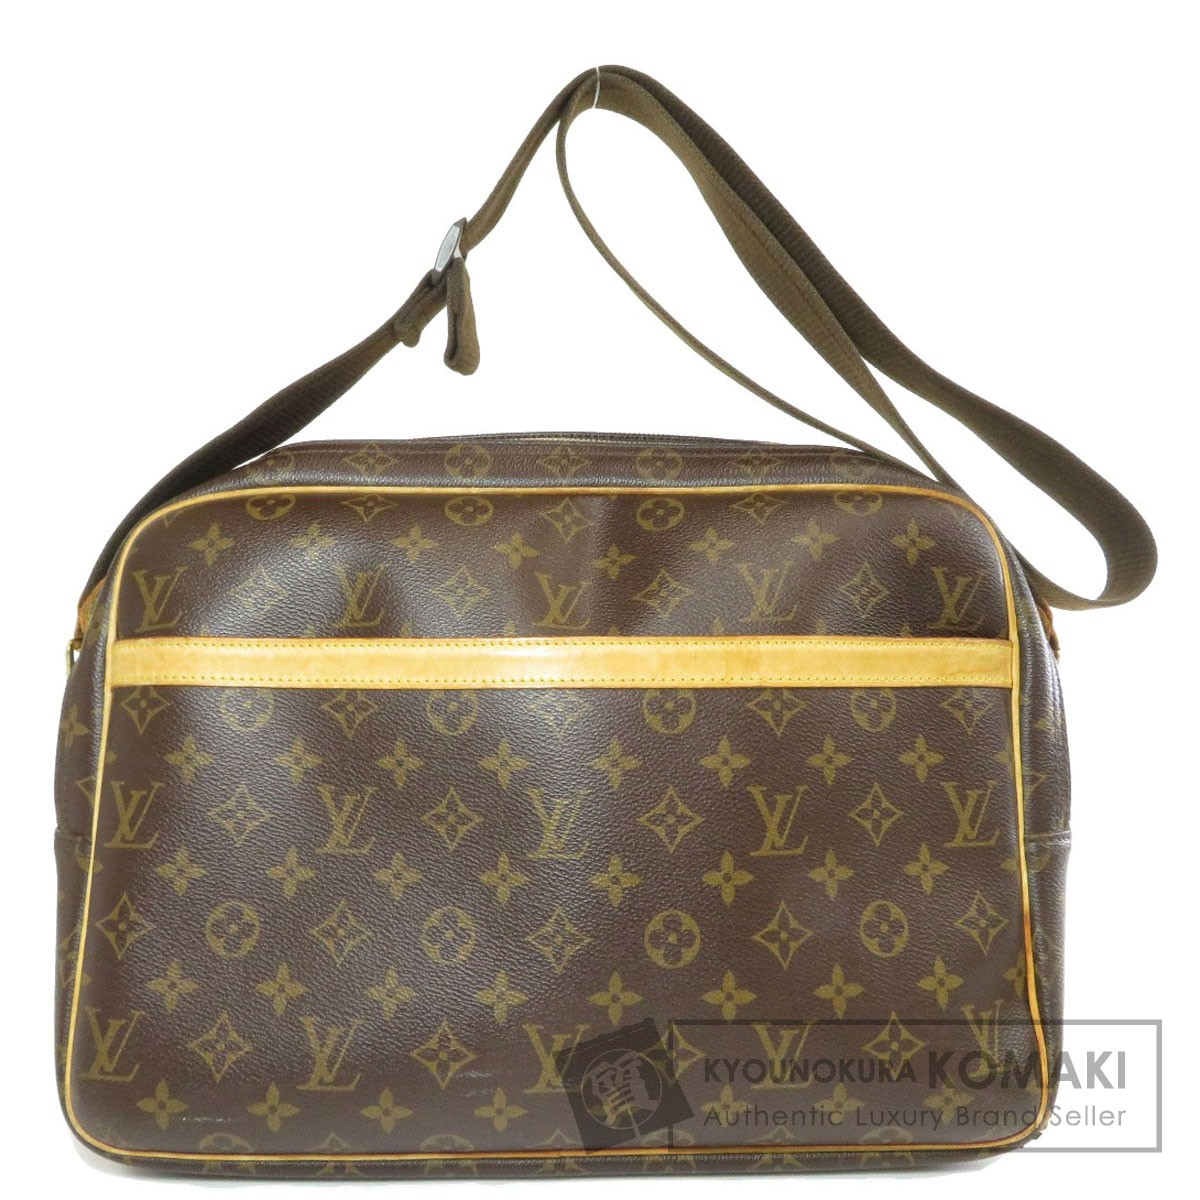 998d4a30300a LOUIS VUITTON ルイヴィトン M45252 リポーター37 ショルダーバッグ ルイヴィトン M45252 リポーター37 ショルダーバッグ